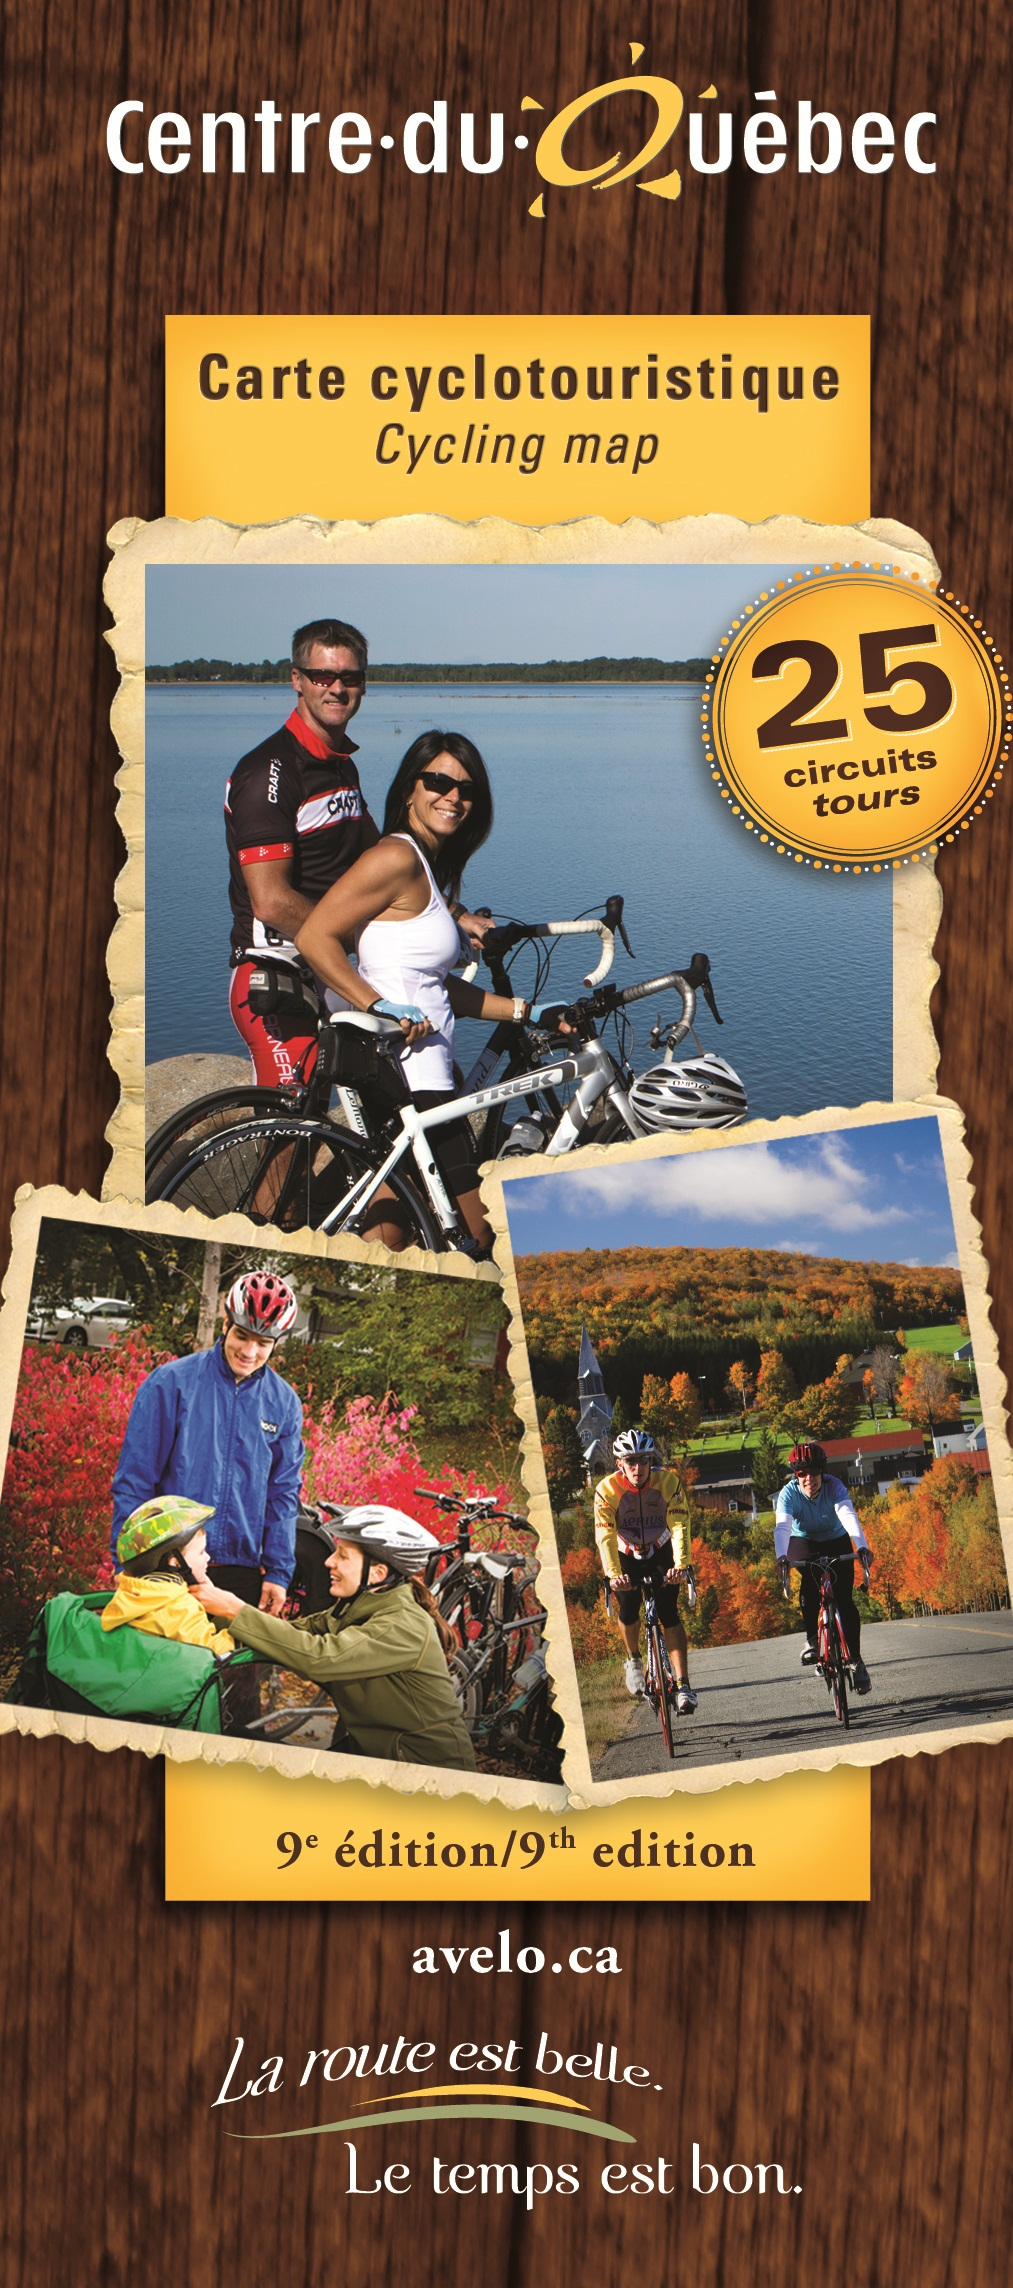 Cover cycling map 2013